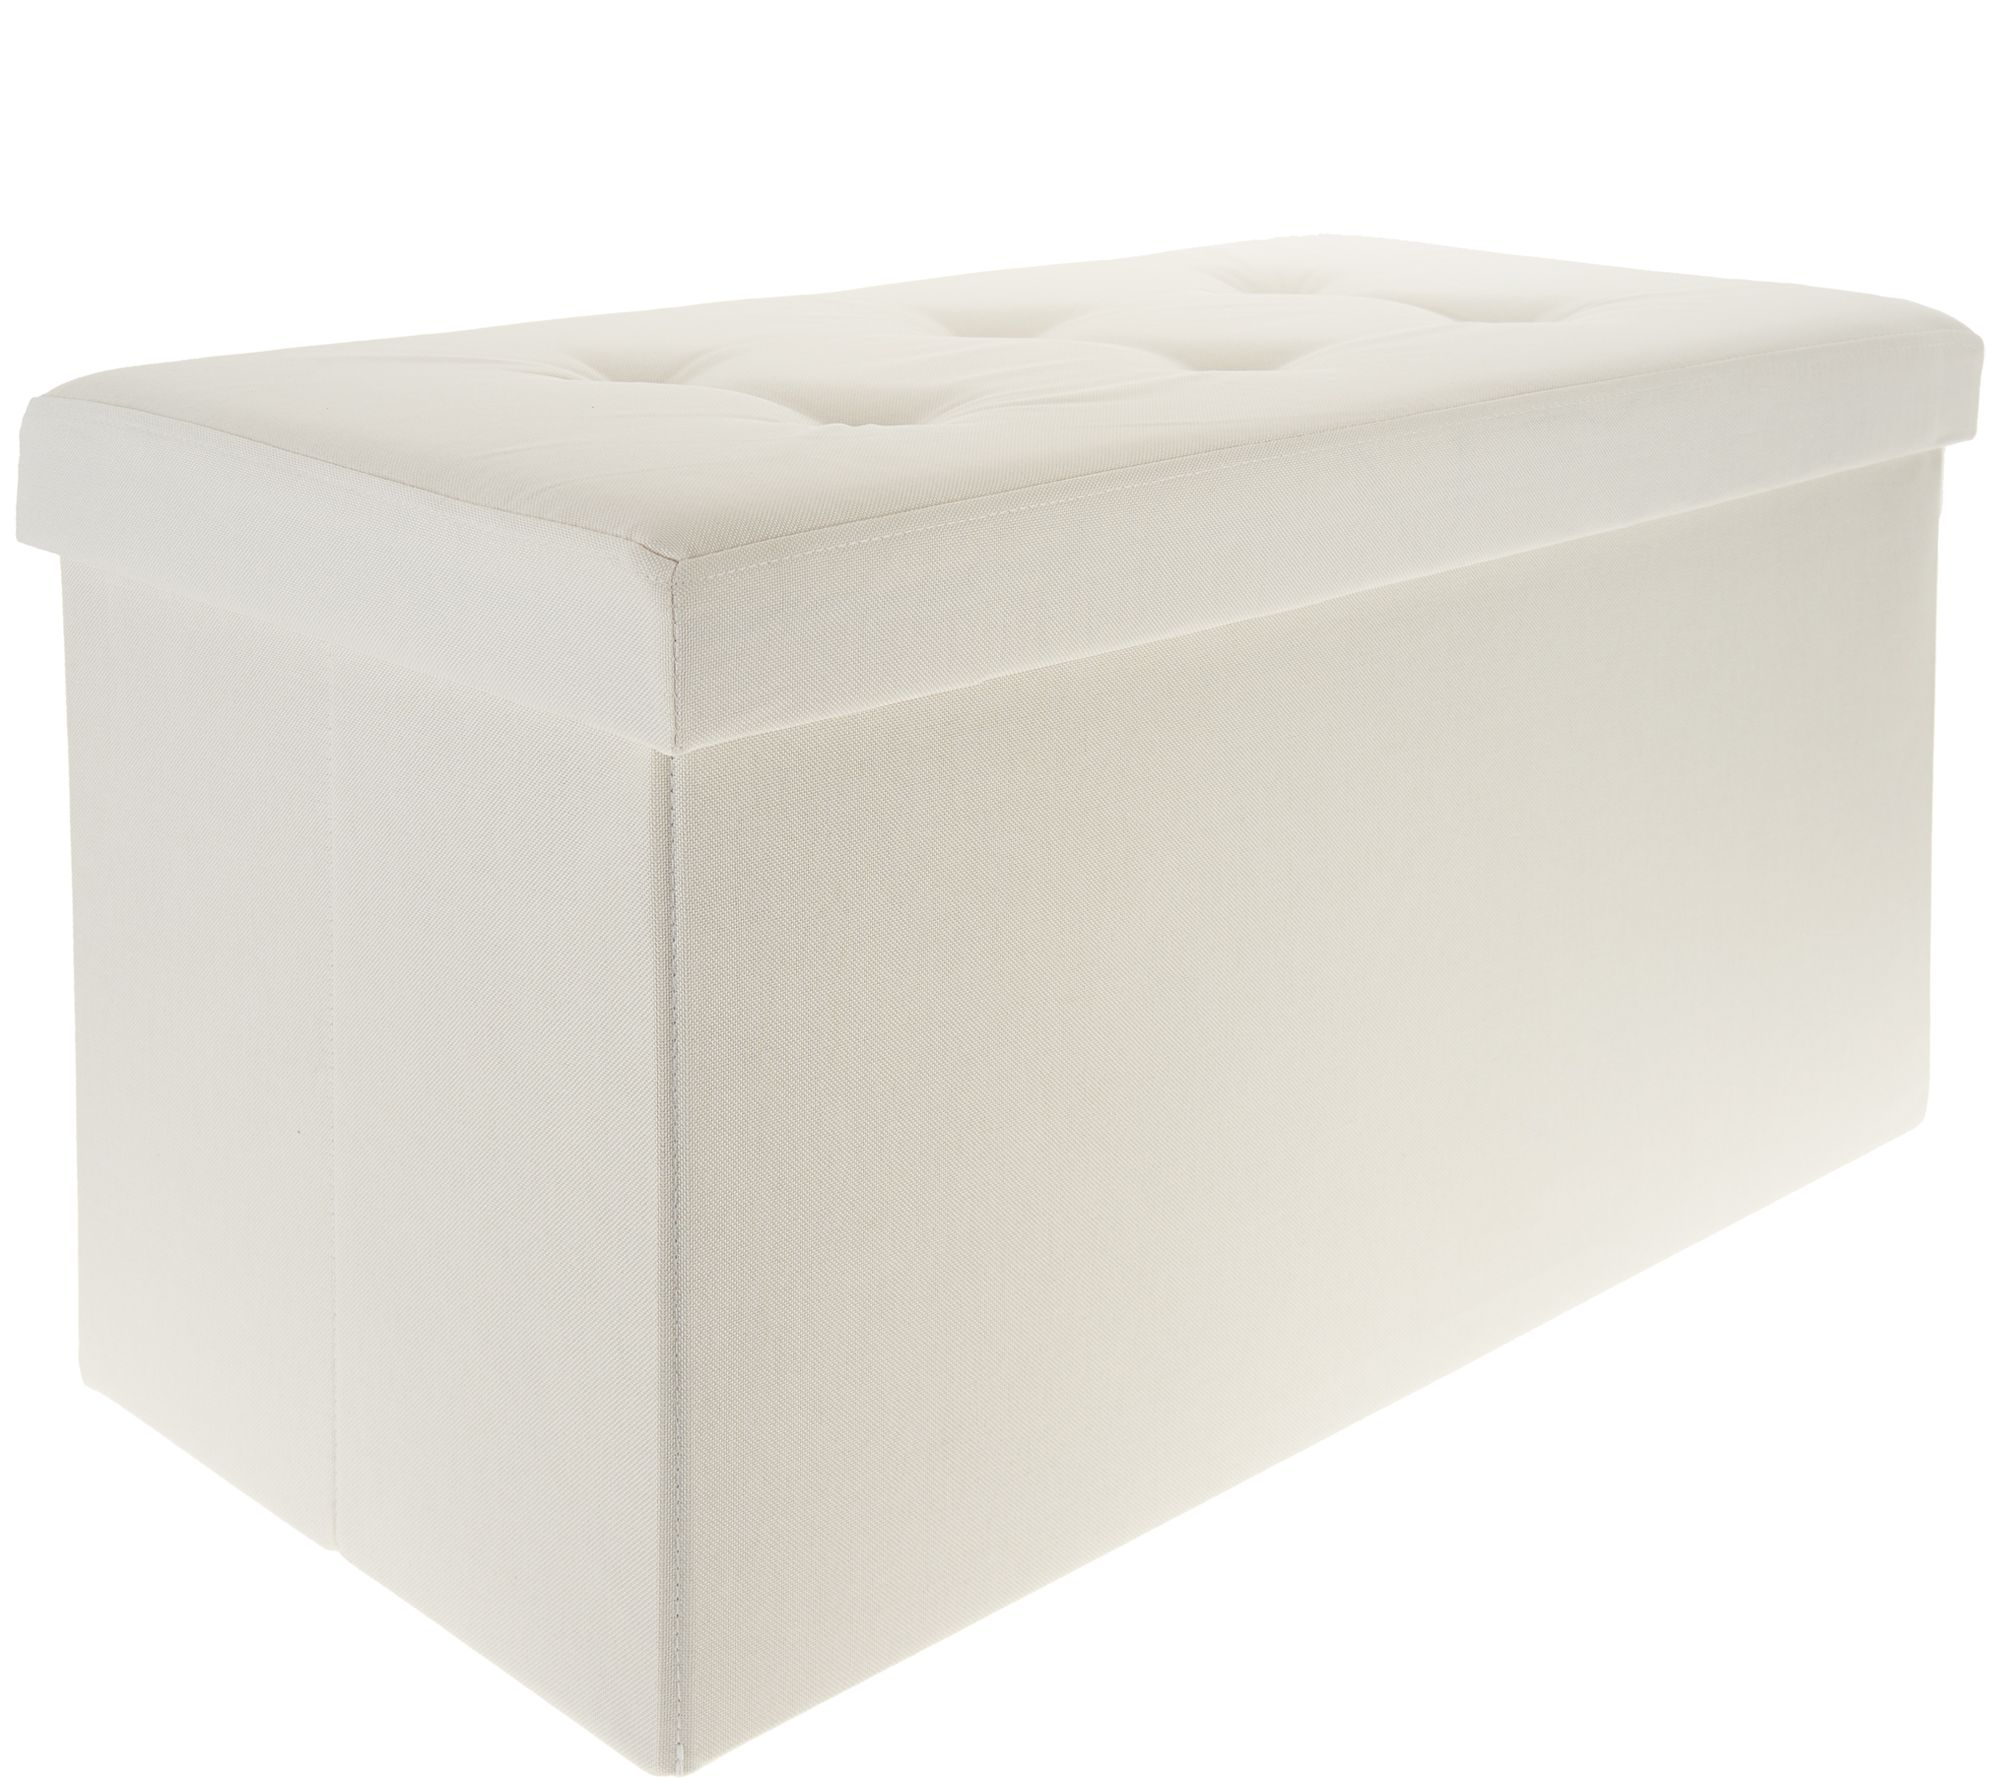 Fine Fresh Home Elements Tufted 30 Folding Storage Bench W Tray Qvc Com Gamerscity Chair Design For Home Gamerscityorg